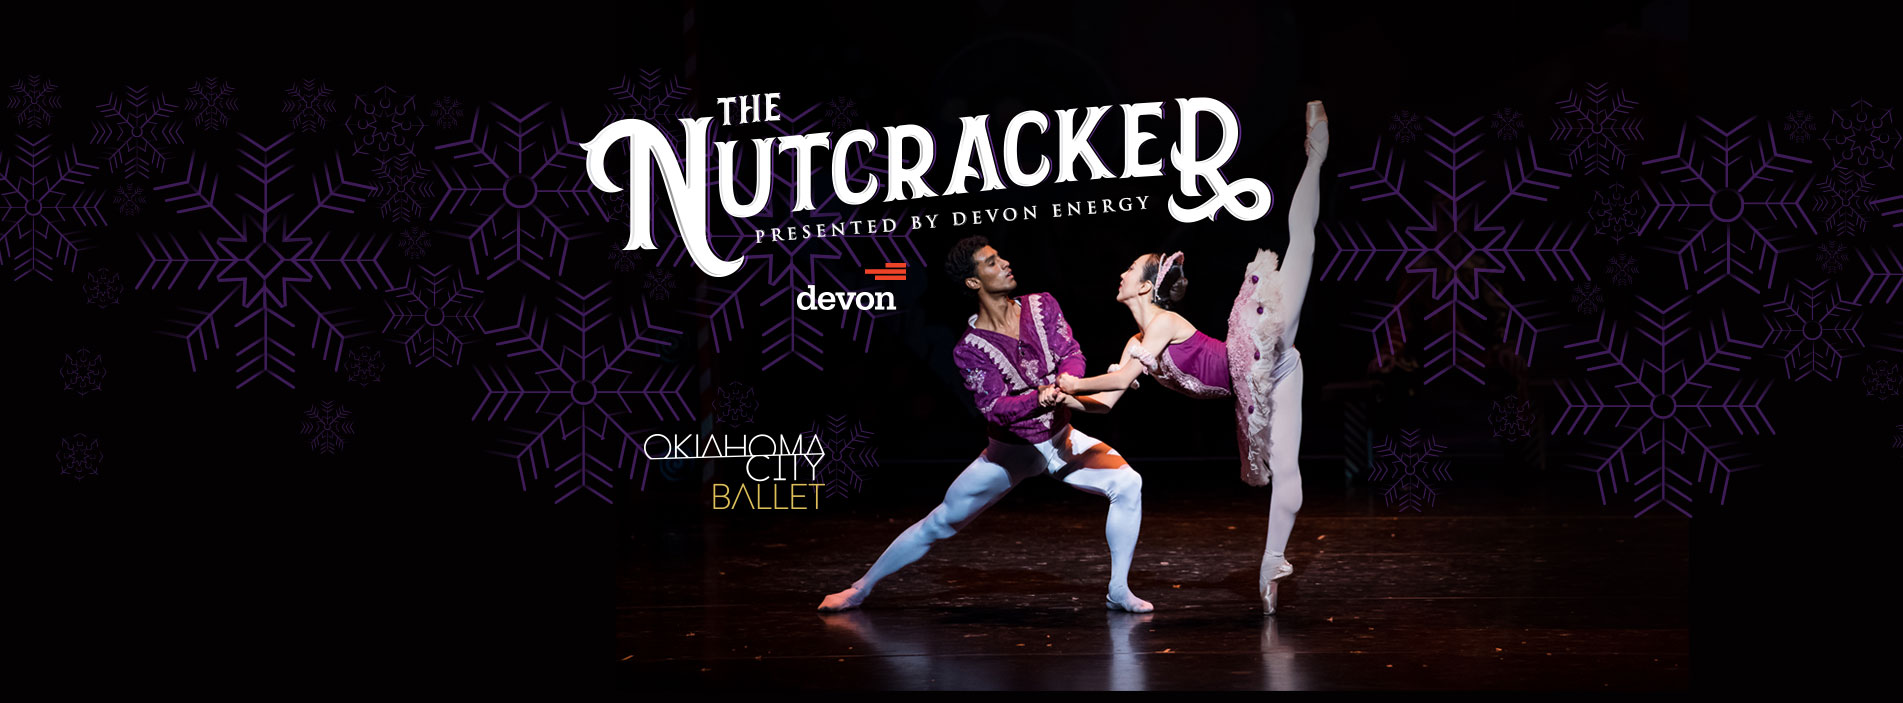 Devon Energy's The Nutcracker